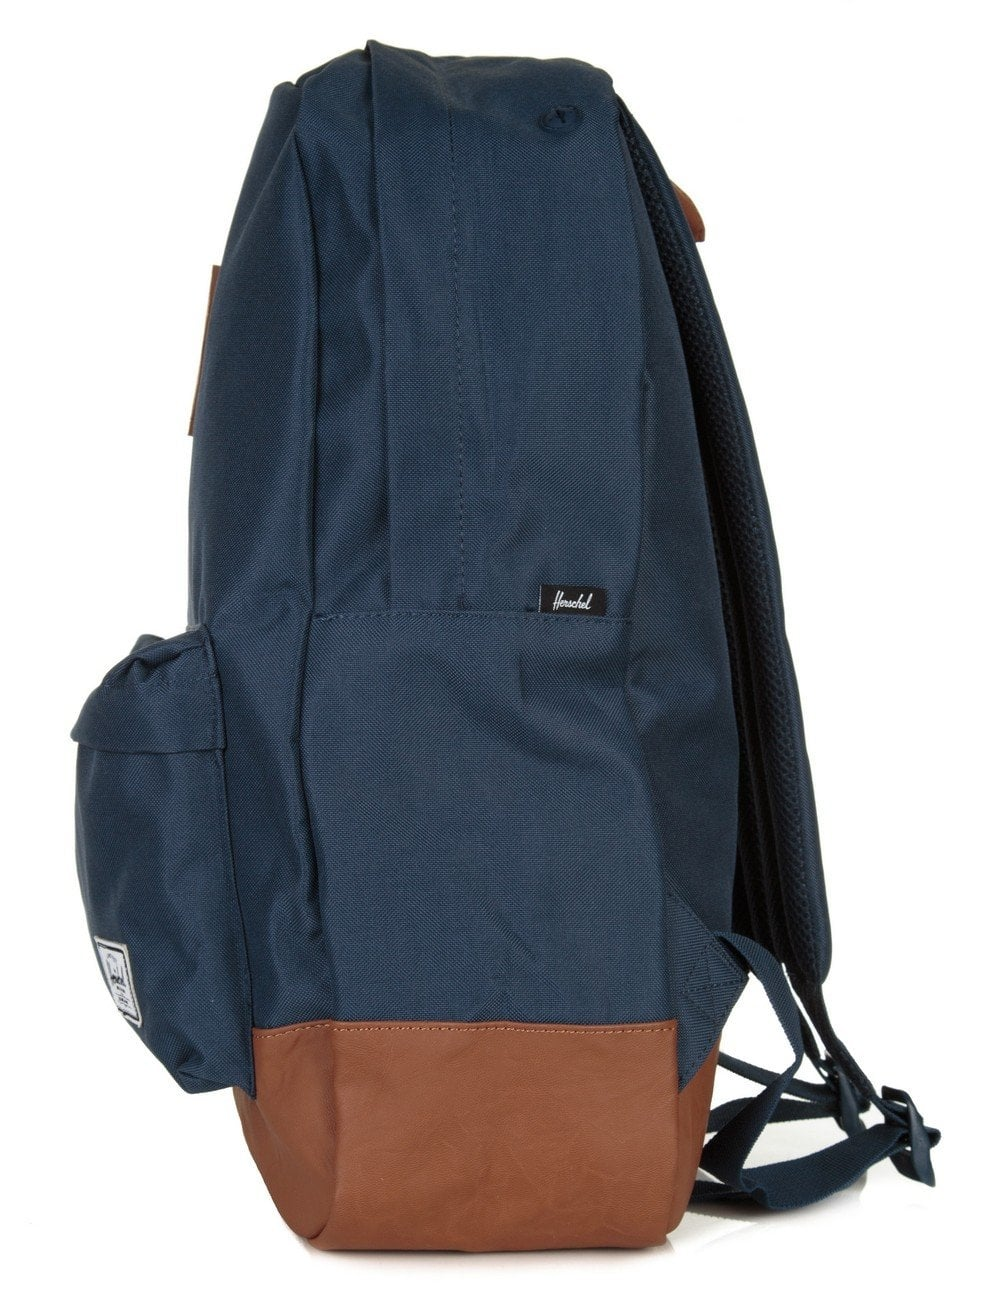 40ba33fed78 Herschel Supply Co Heritage 21.5L Backpack - Navy Tan - Accessories ...